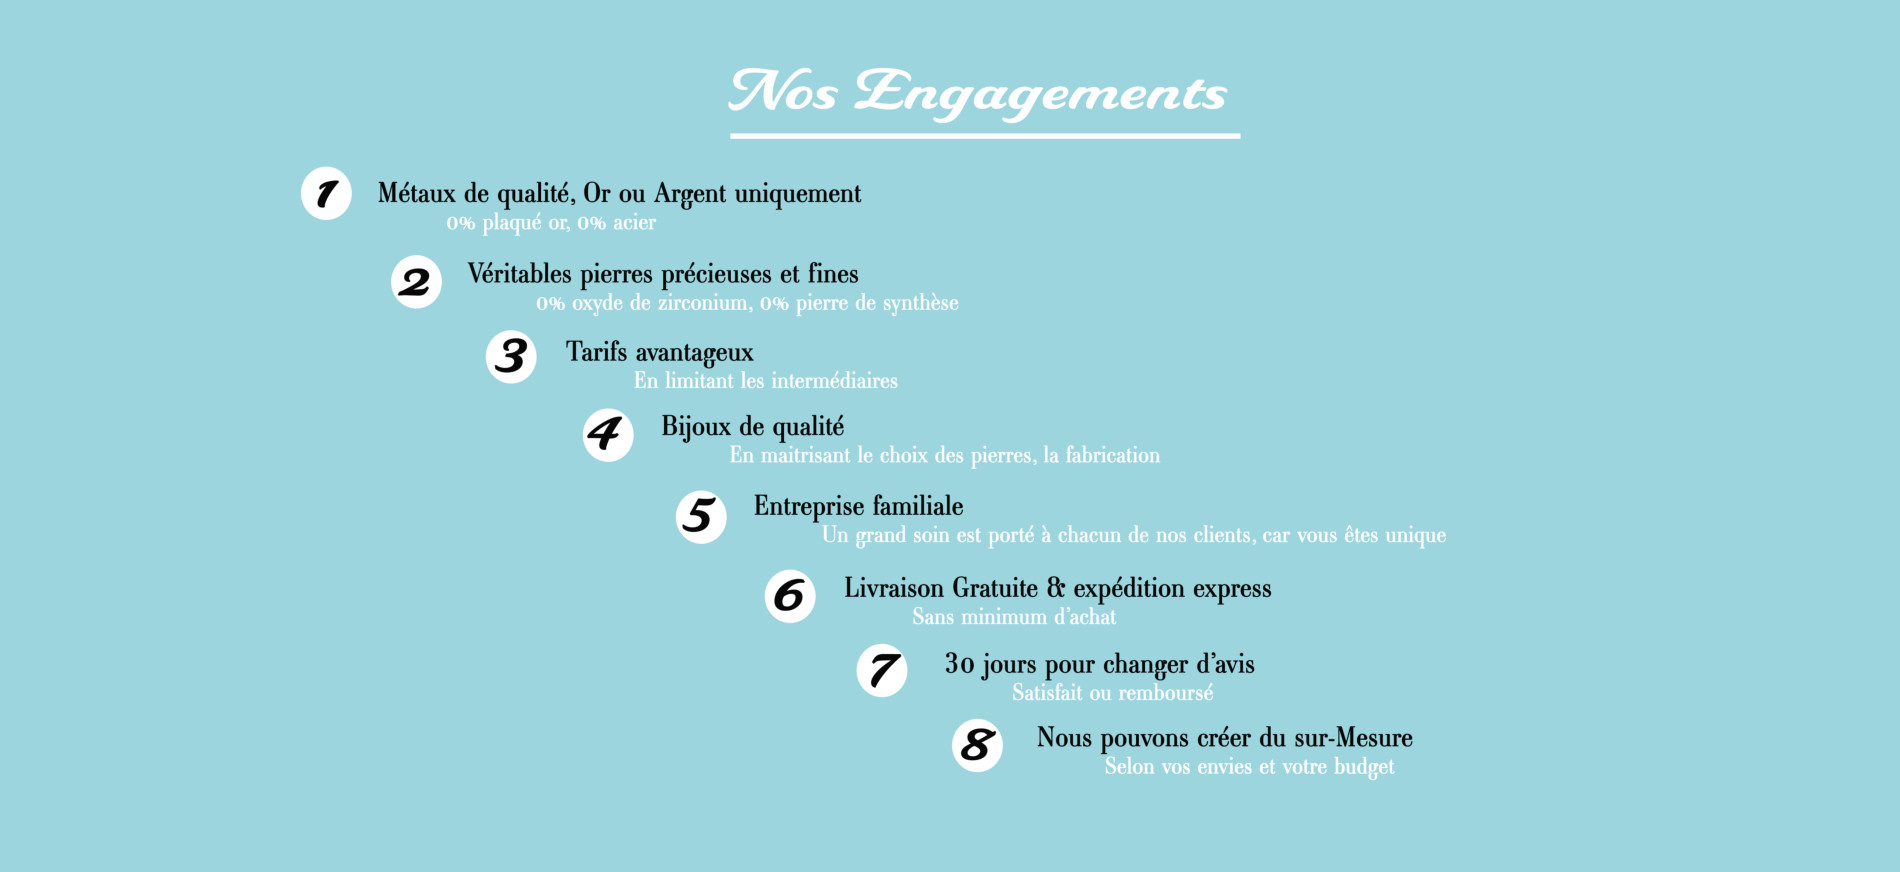 Nos engagements de qualité